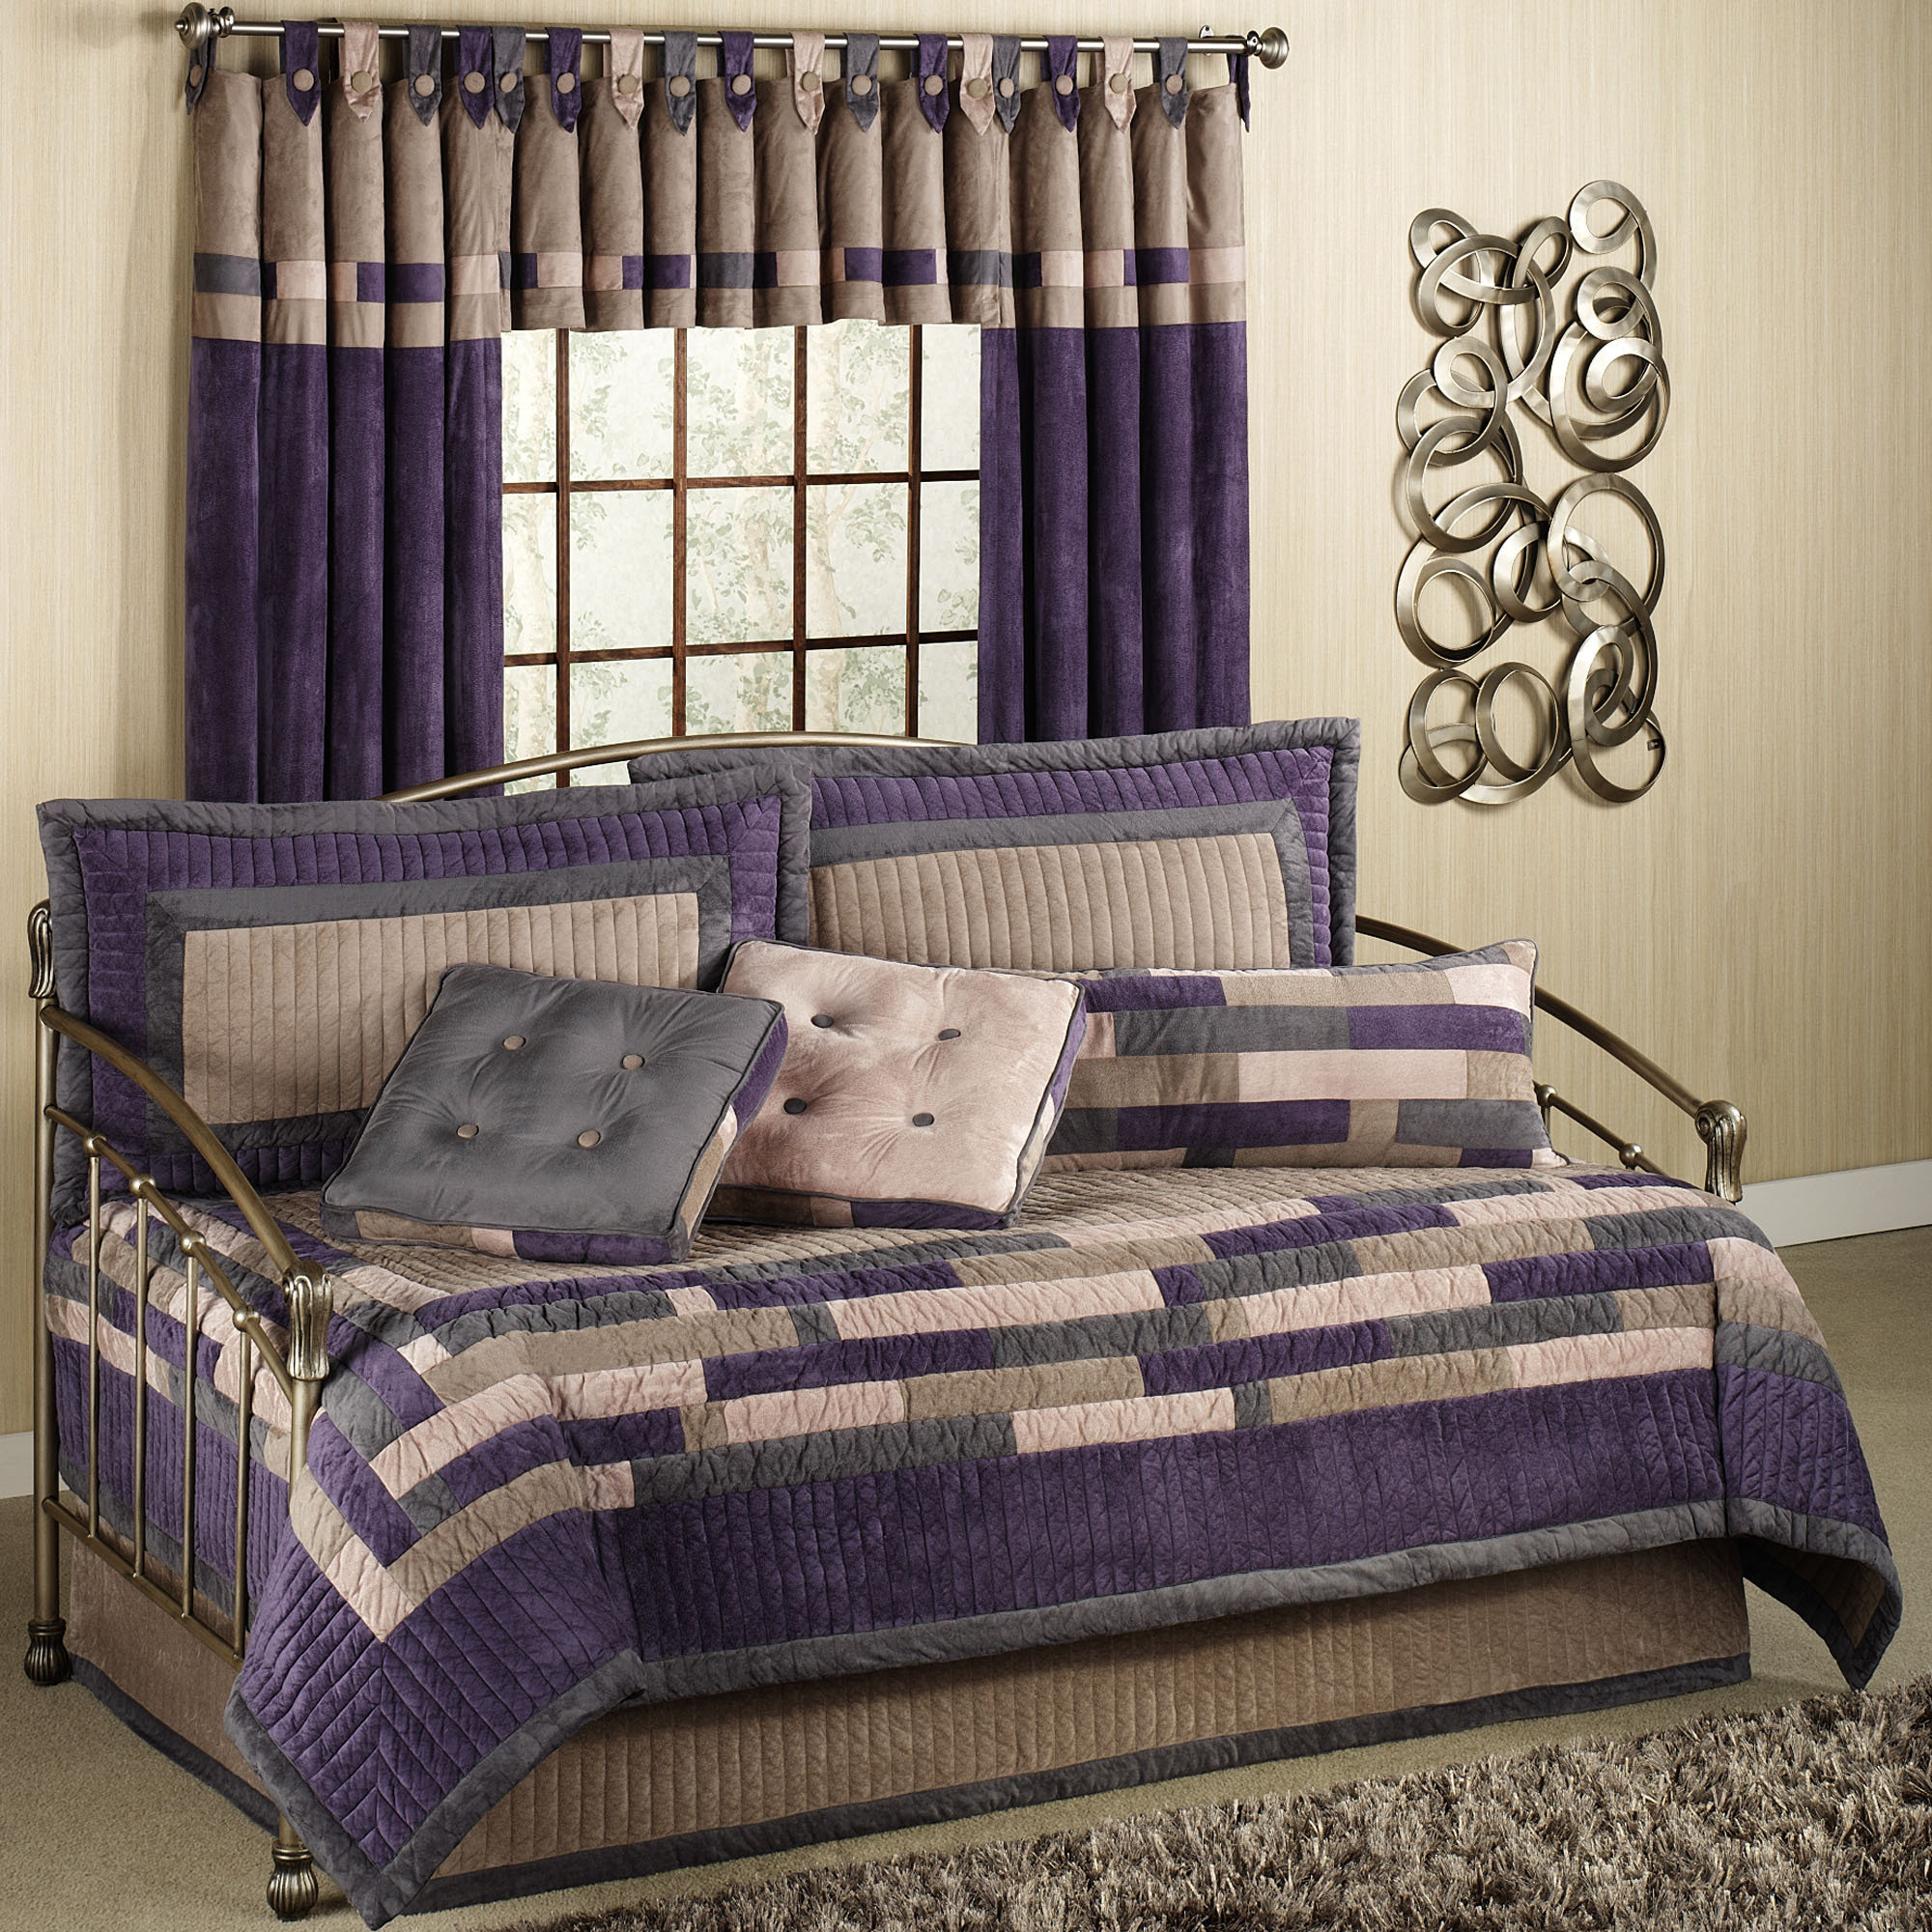 Charming Daybed Coverlets Sets 5